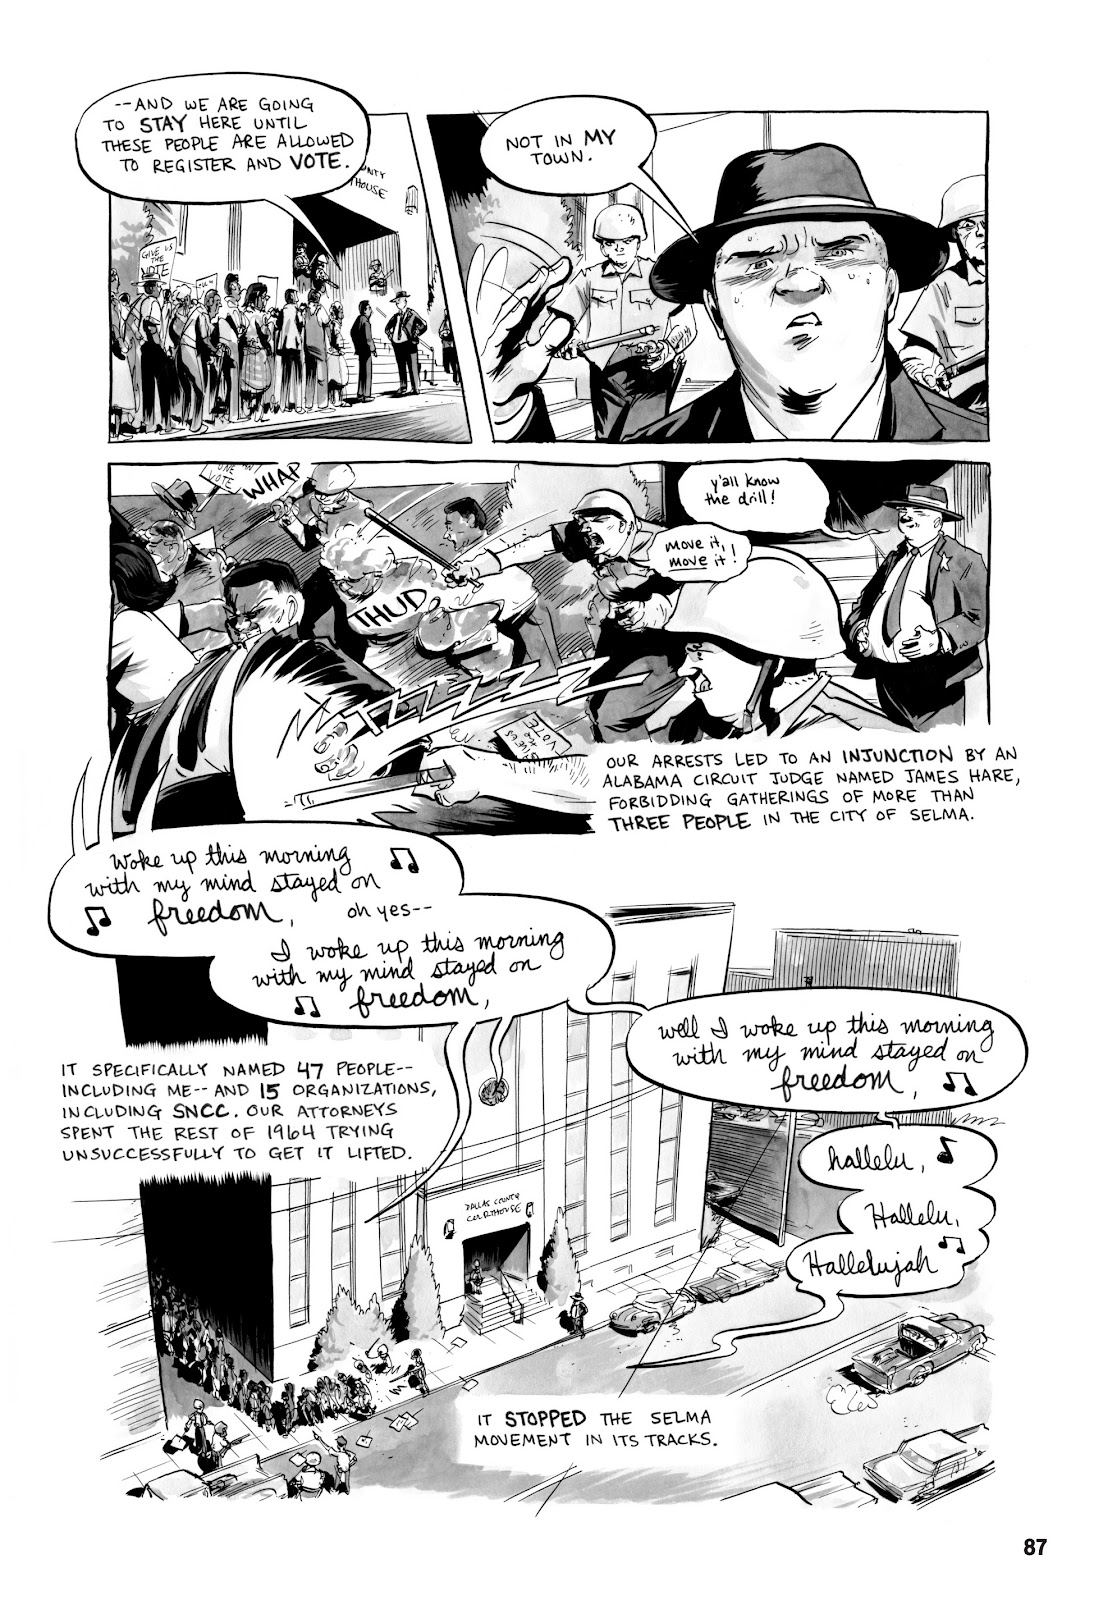 March 3 Page 84